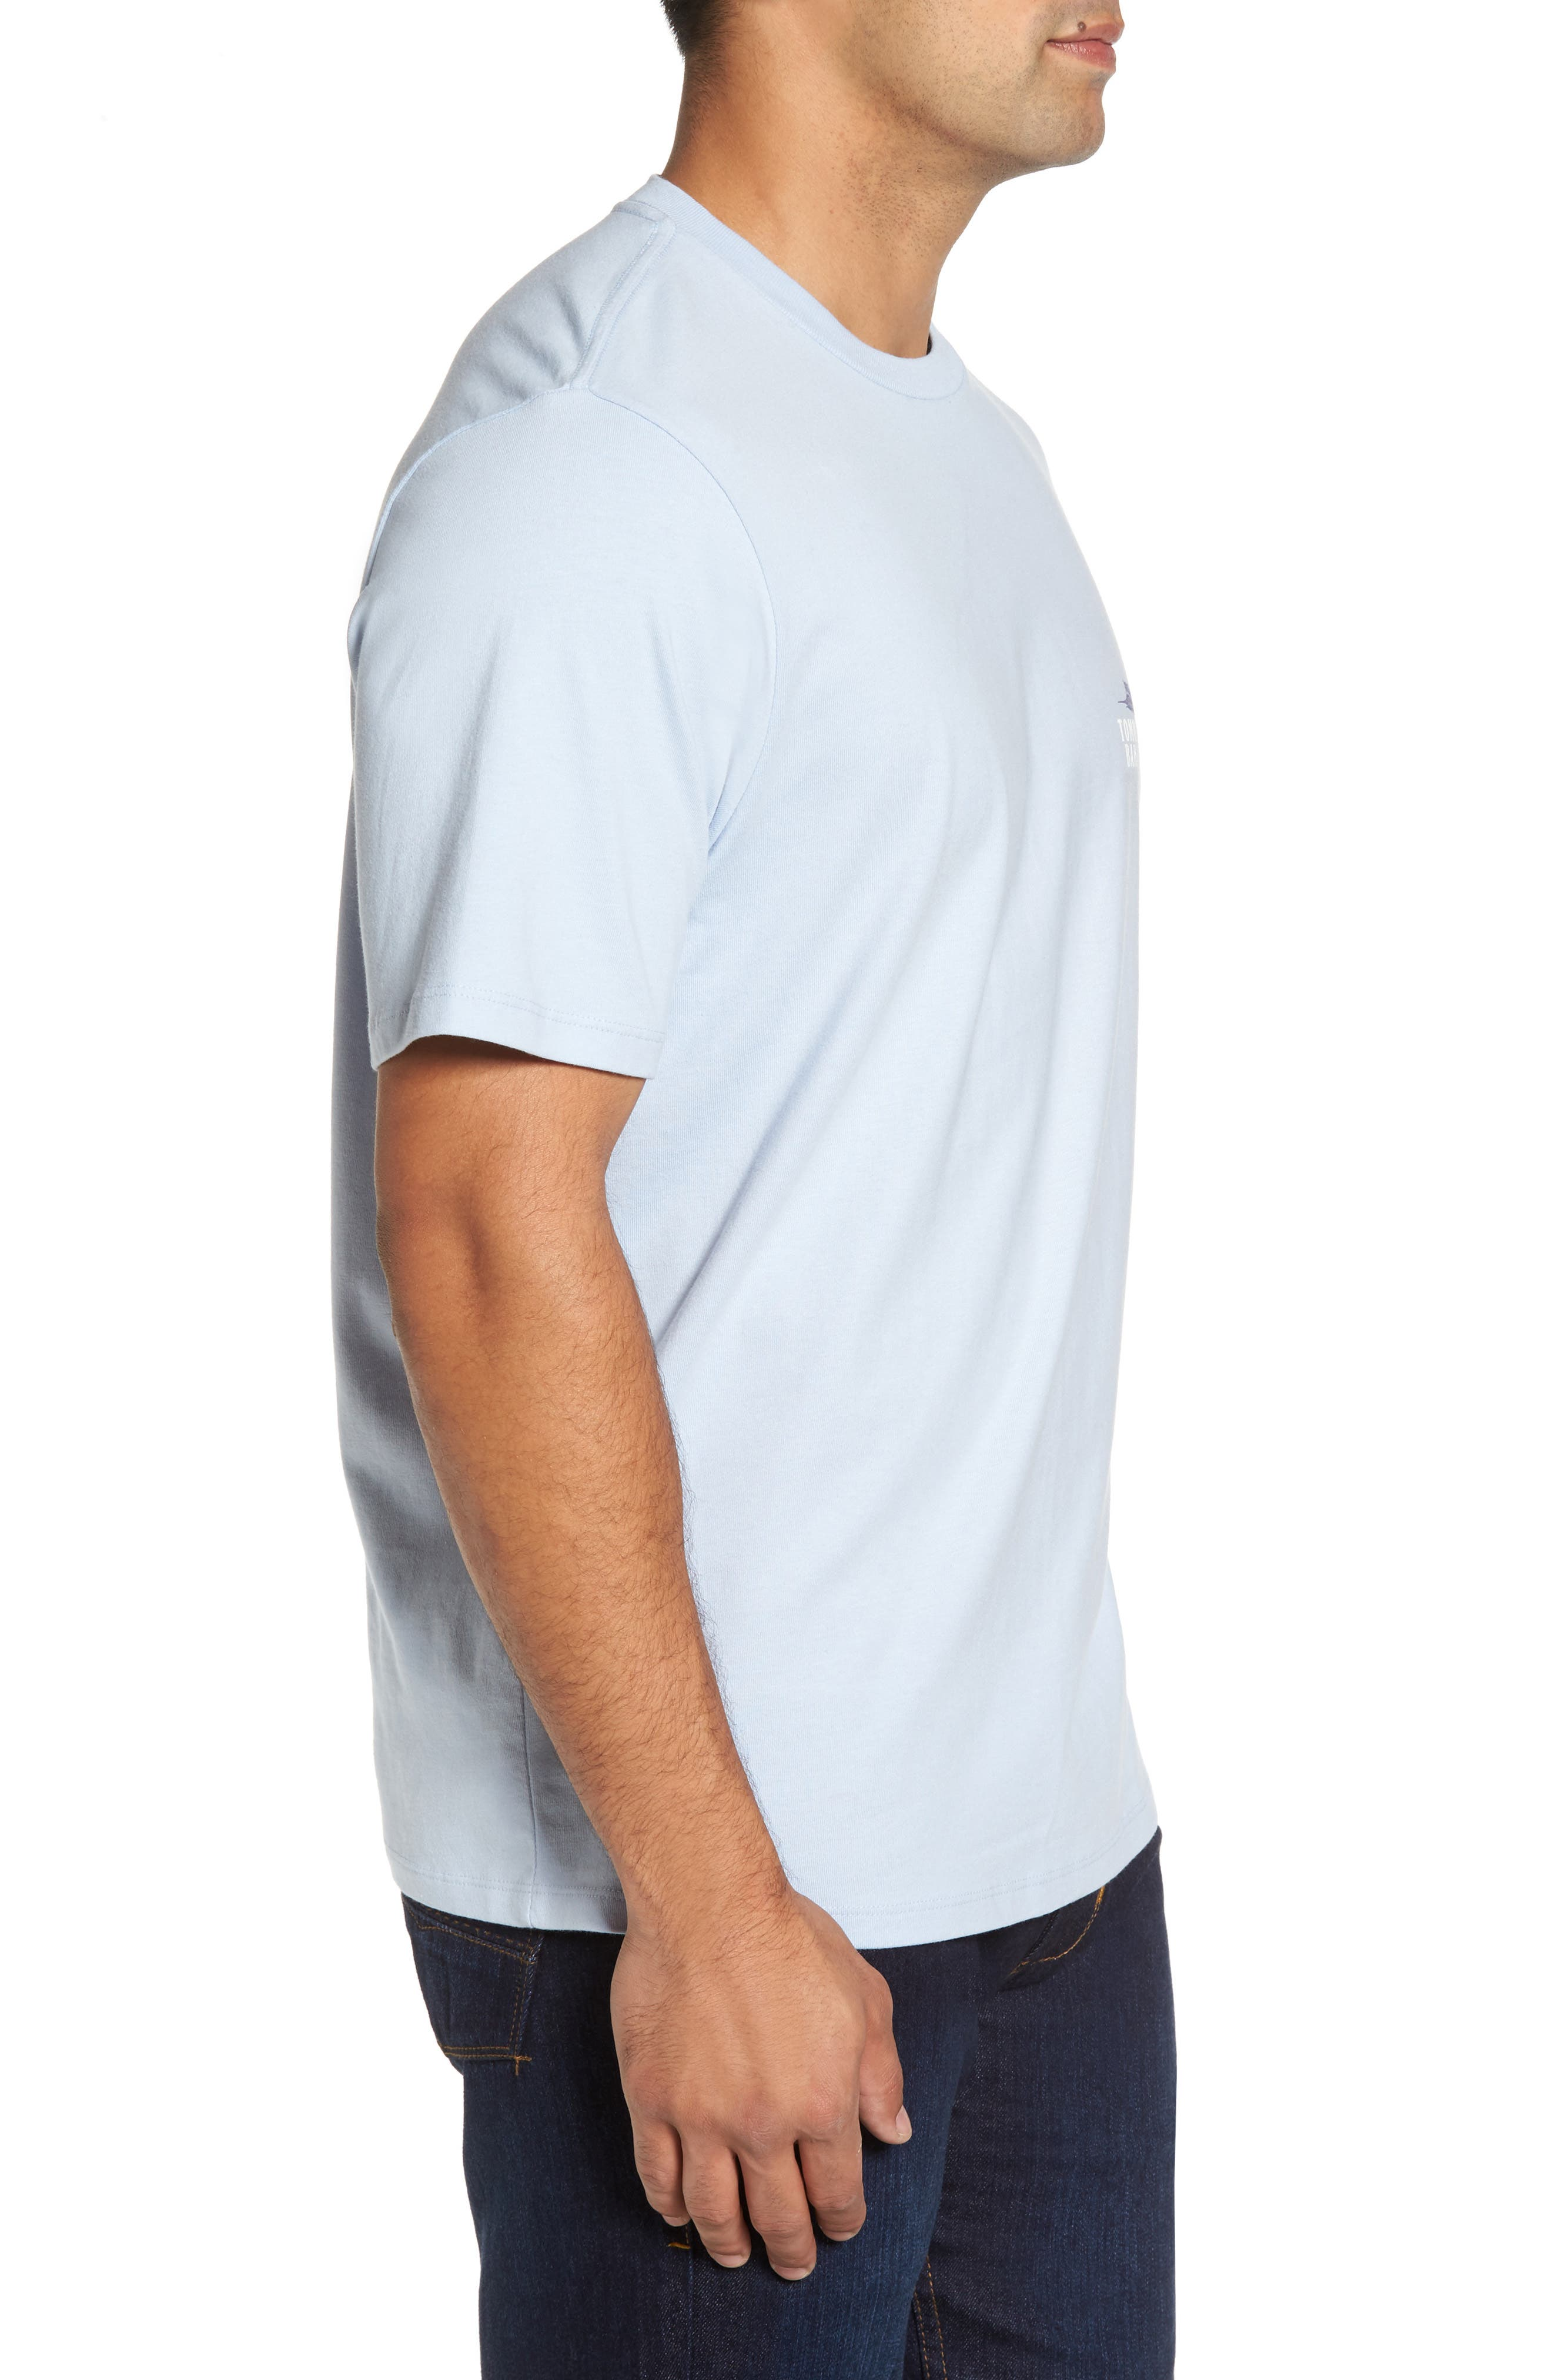 Casting Call Standard Fit T-Shirt,                             Alternate thumbnail 3, color,                             400